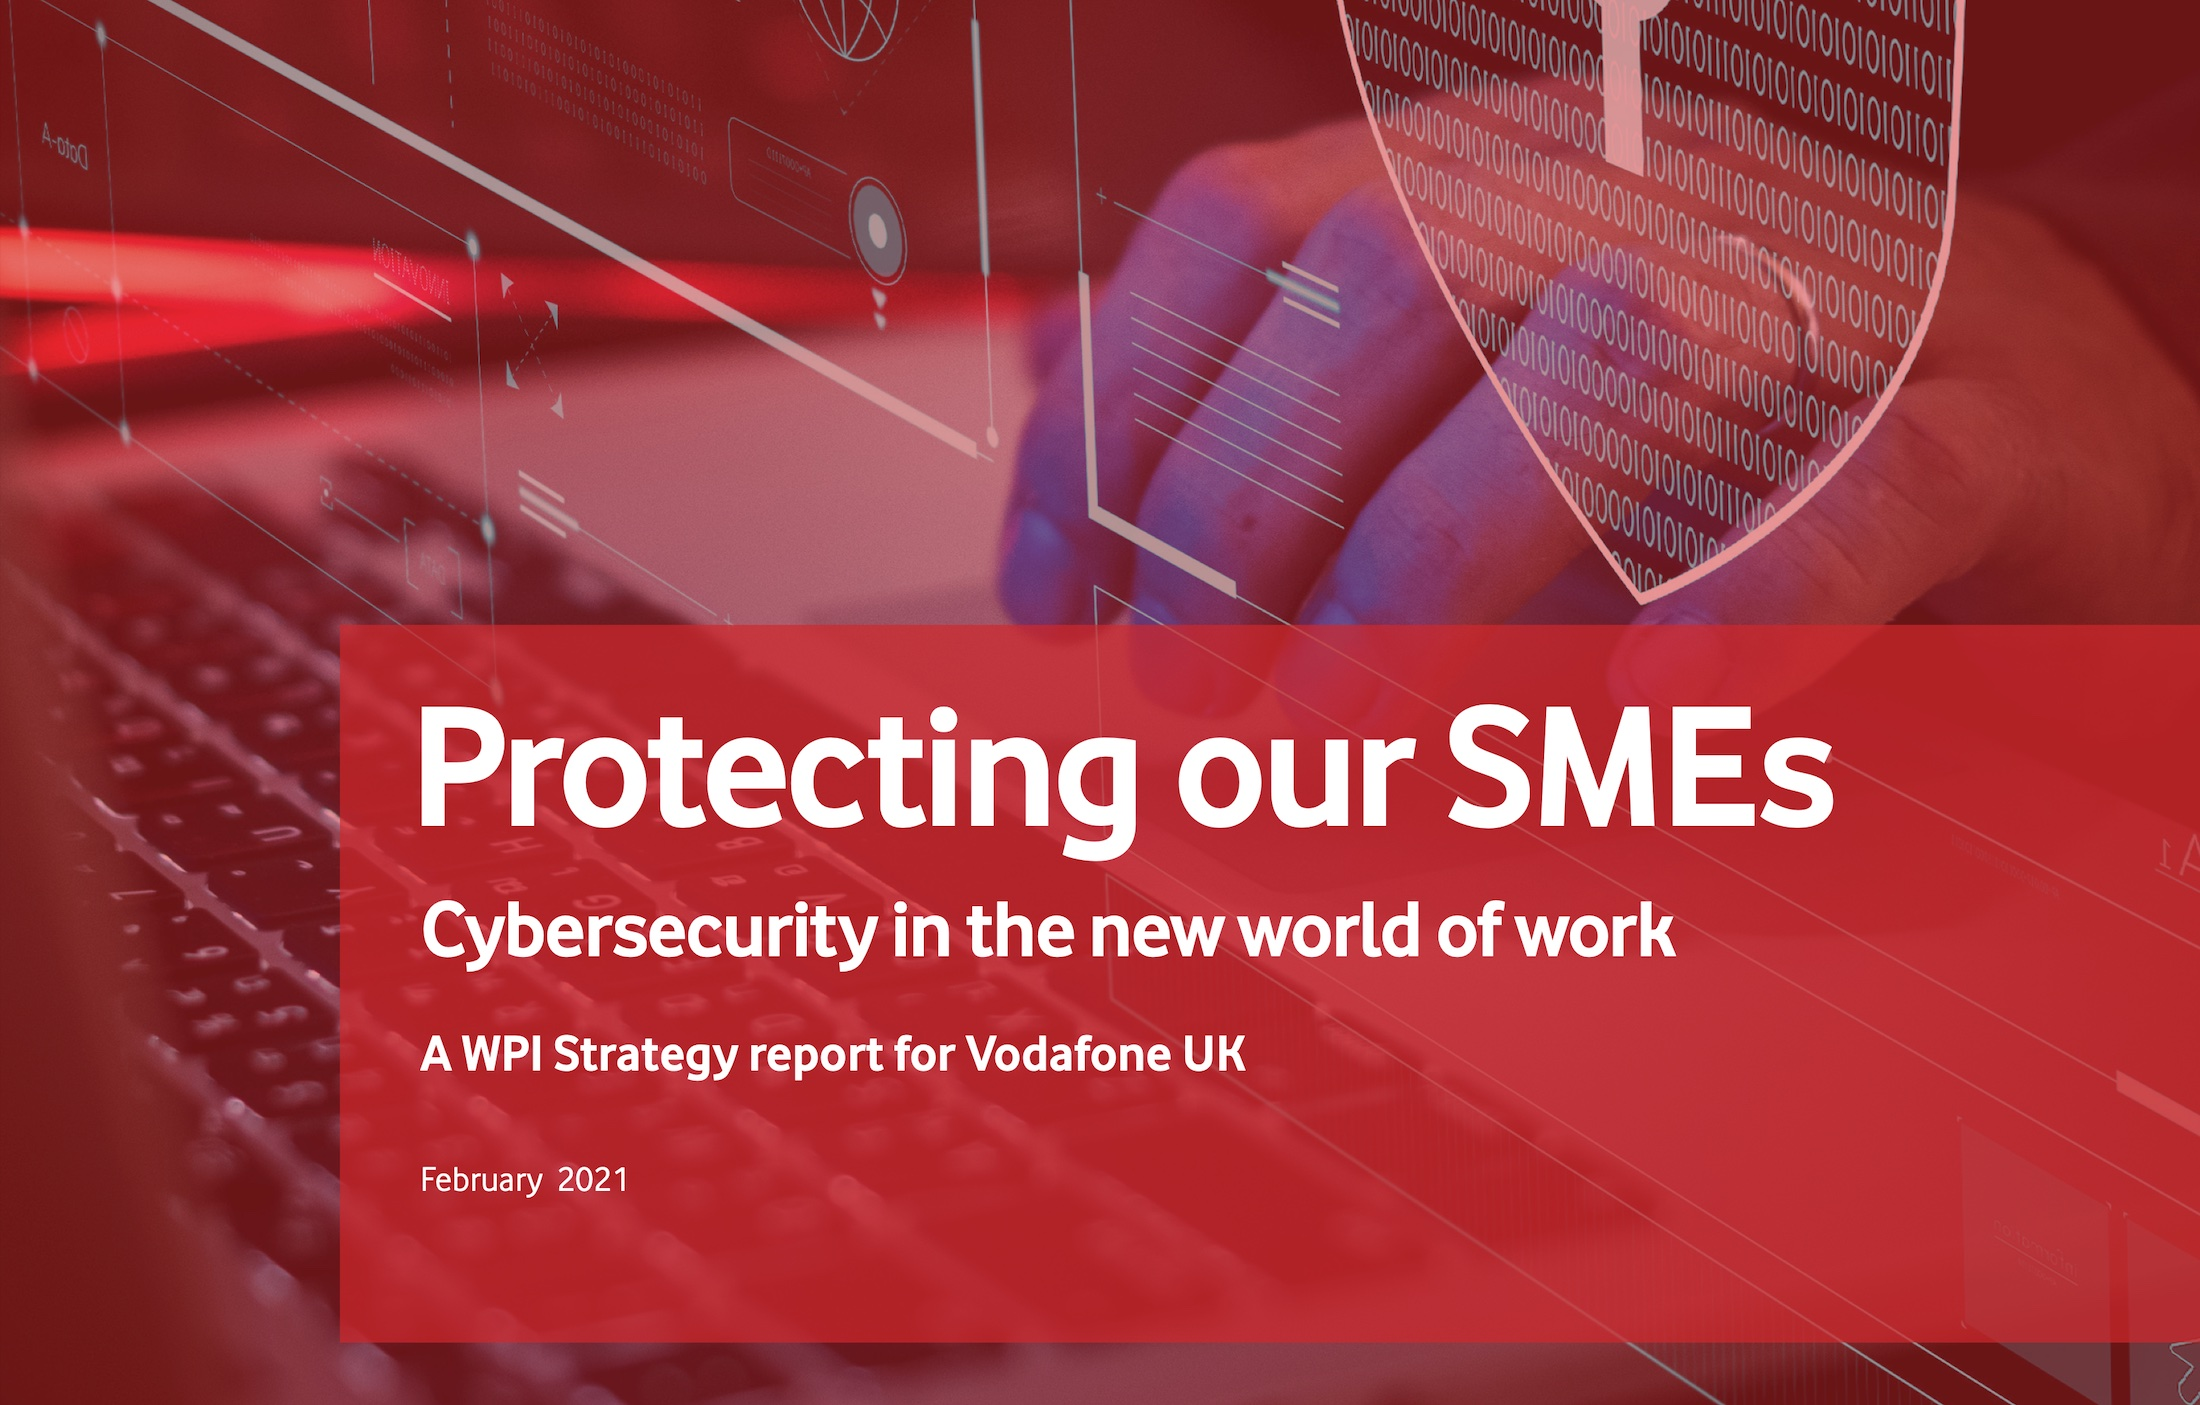 Vodafone calls for cybersecurity policies to support the recovery of SMEs